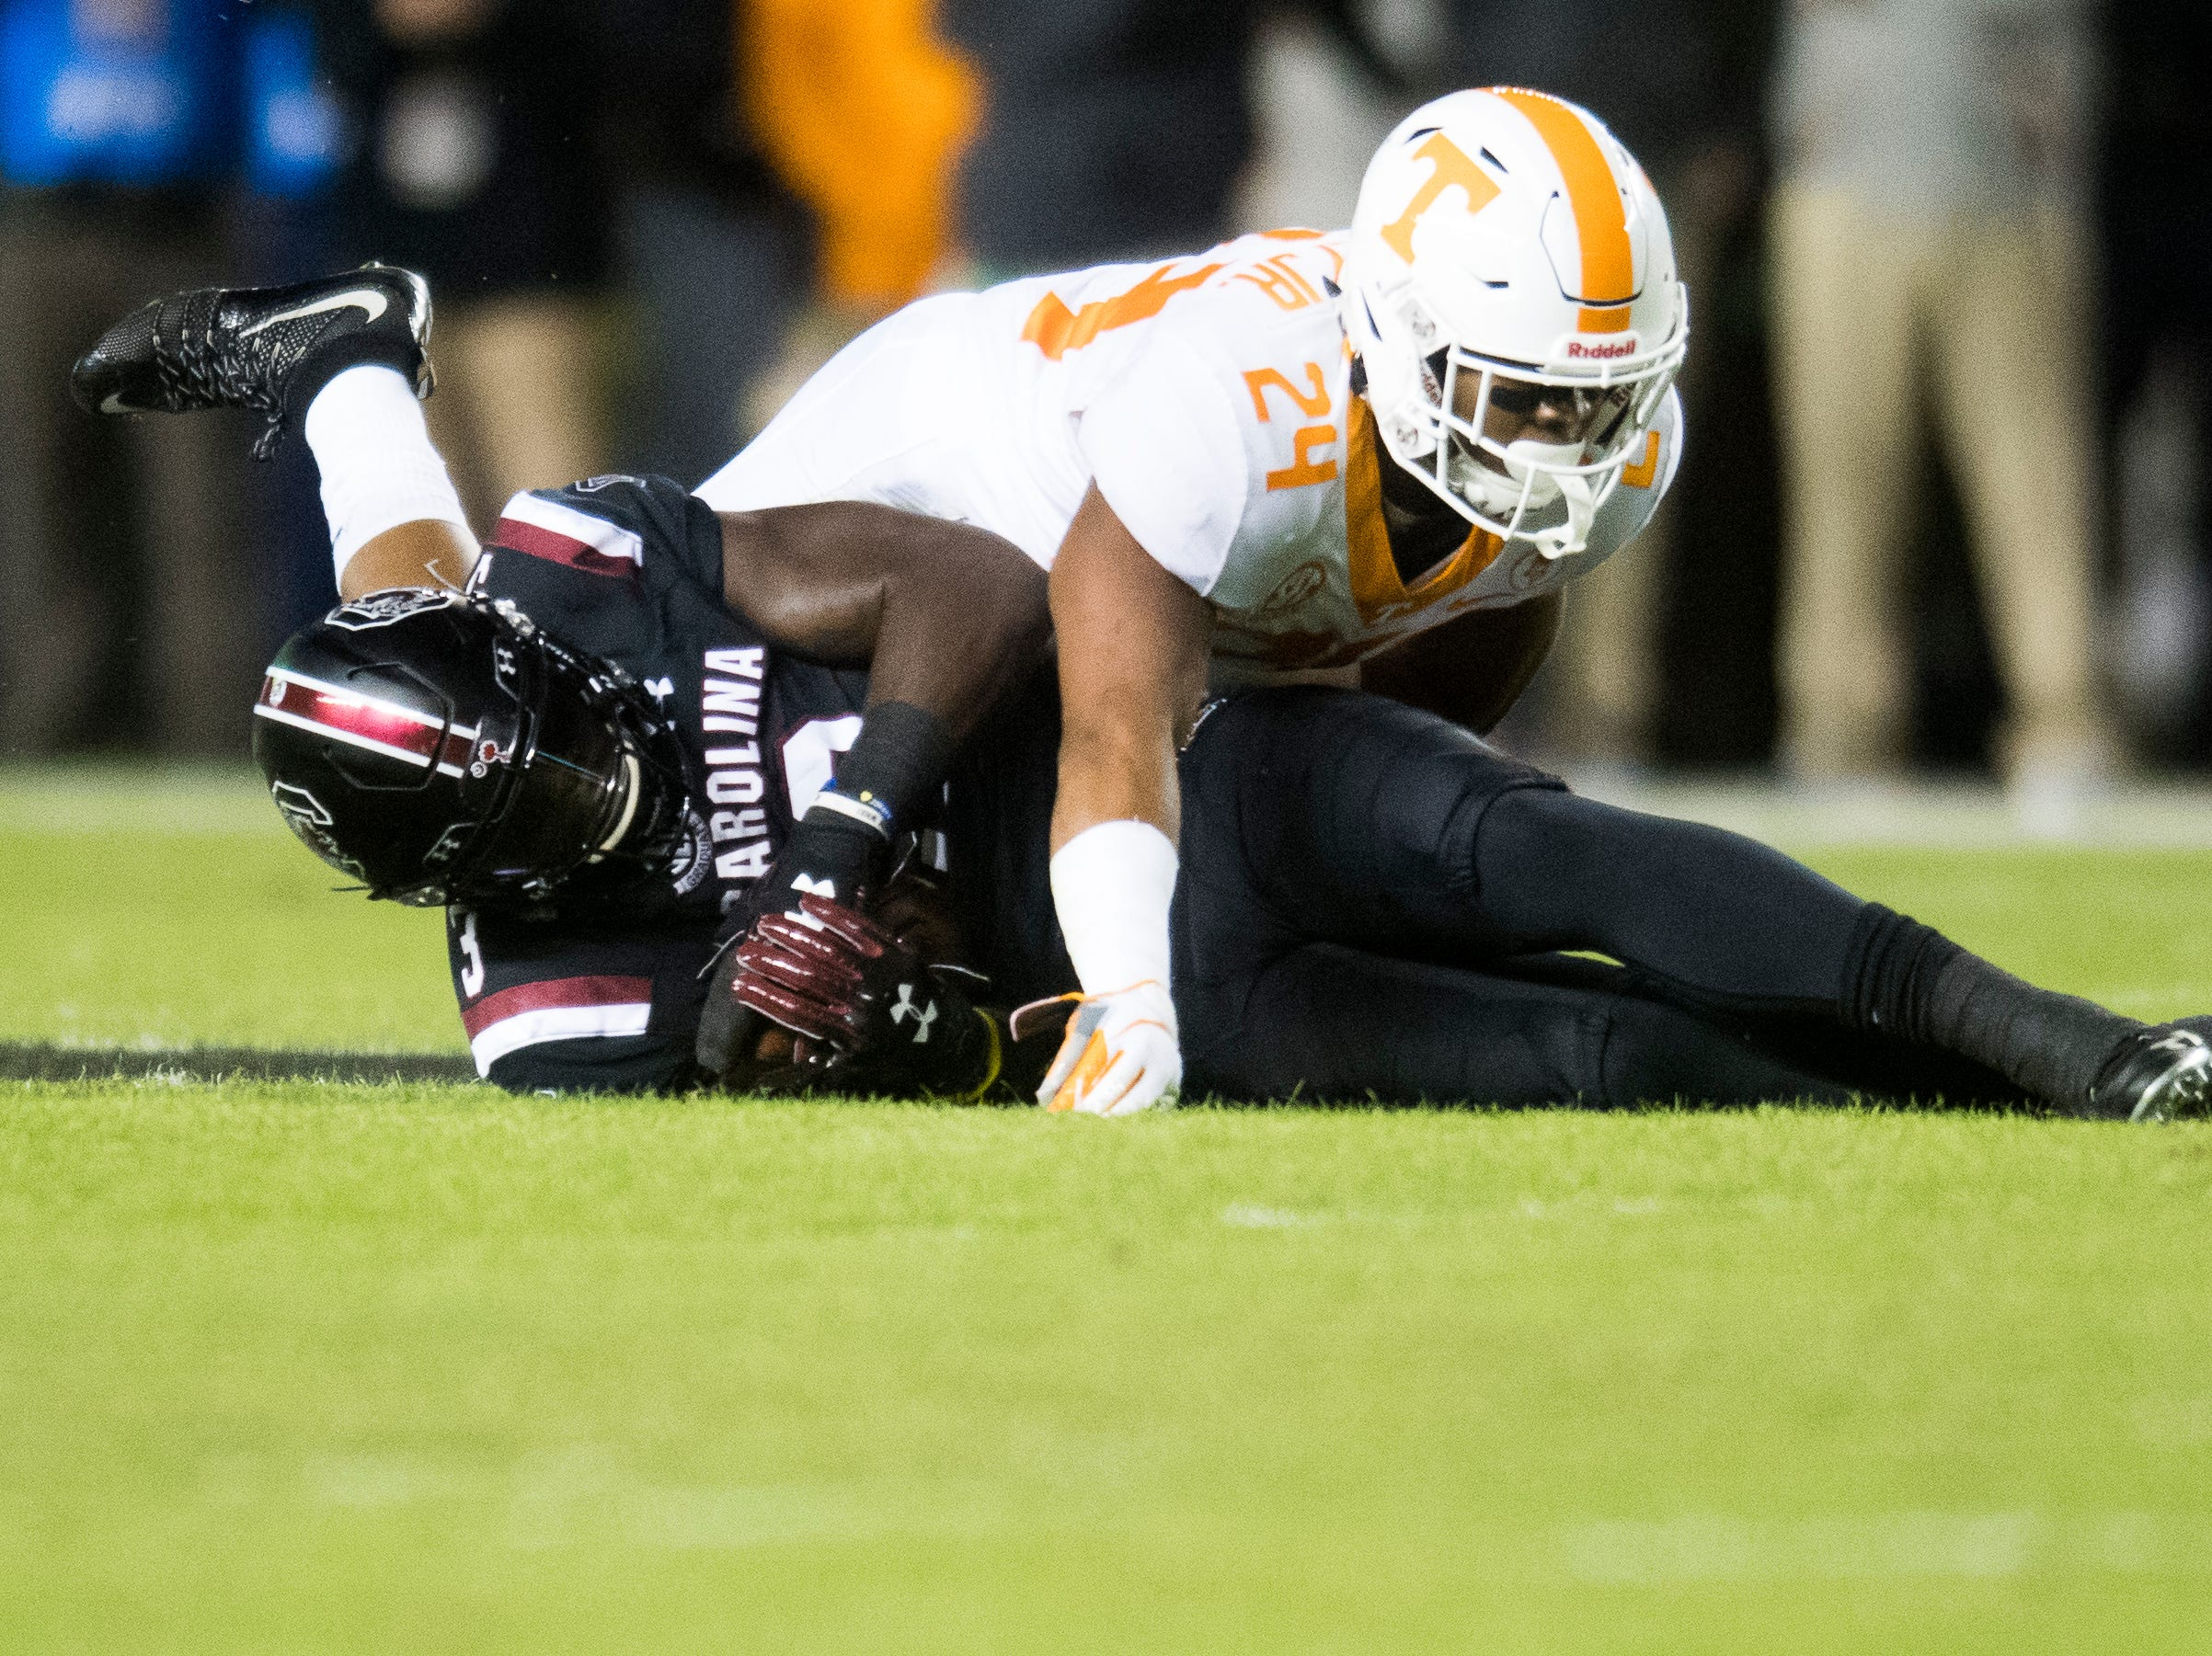 Tennessee defensive back Todd Kelly Jr. (24) takes down South Carolina tight end K.C. Crosby (3) during a game between Tennessee and South Carolina at Williams-Brice Stadium in Columbia, South Carolina on Saturday, October 27, 2018.